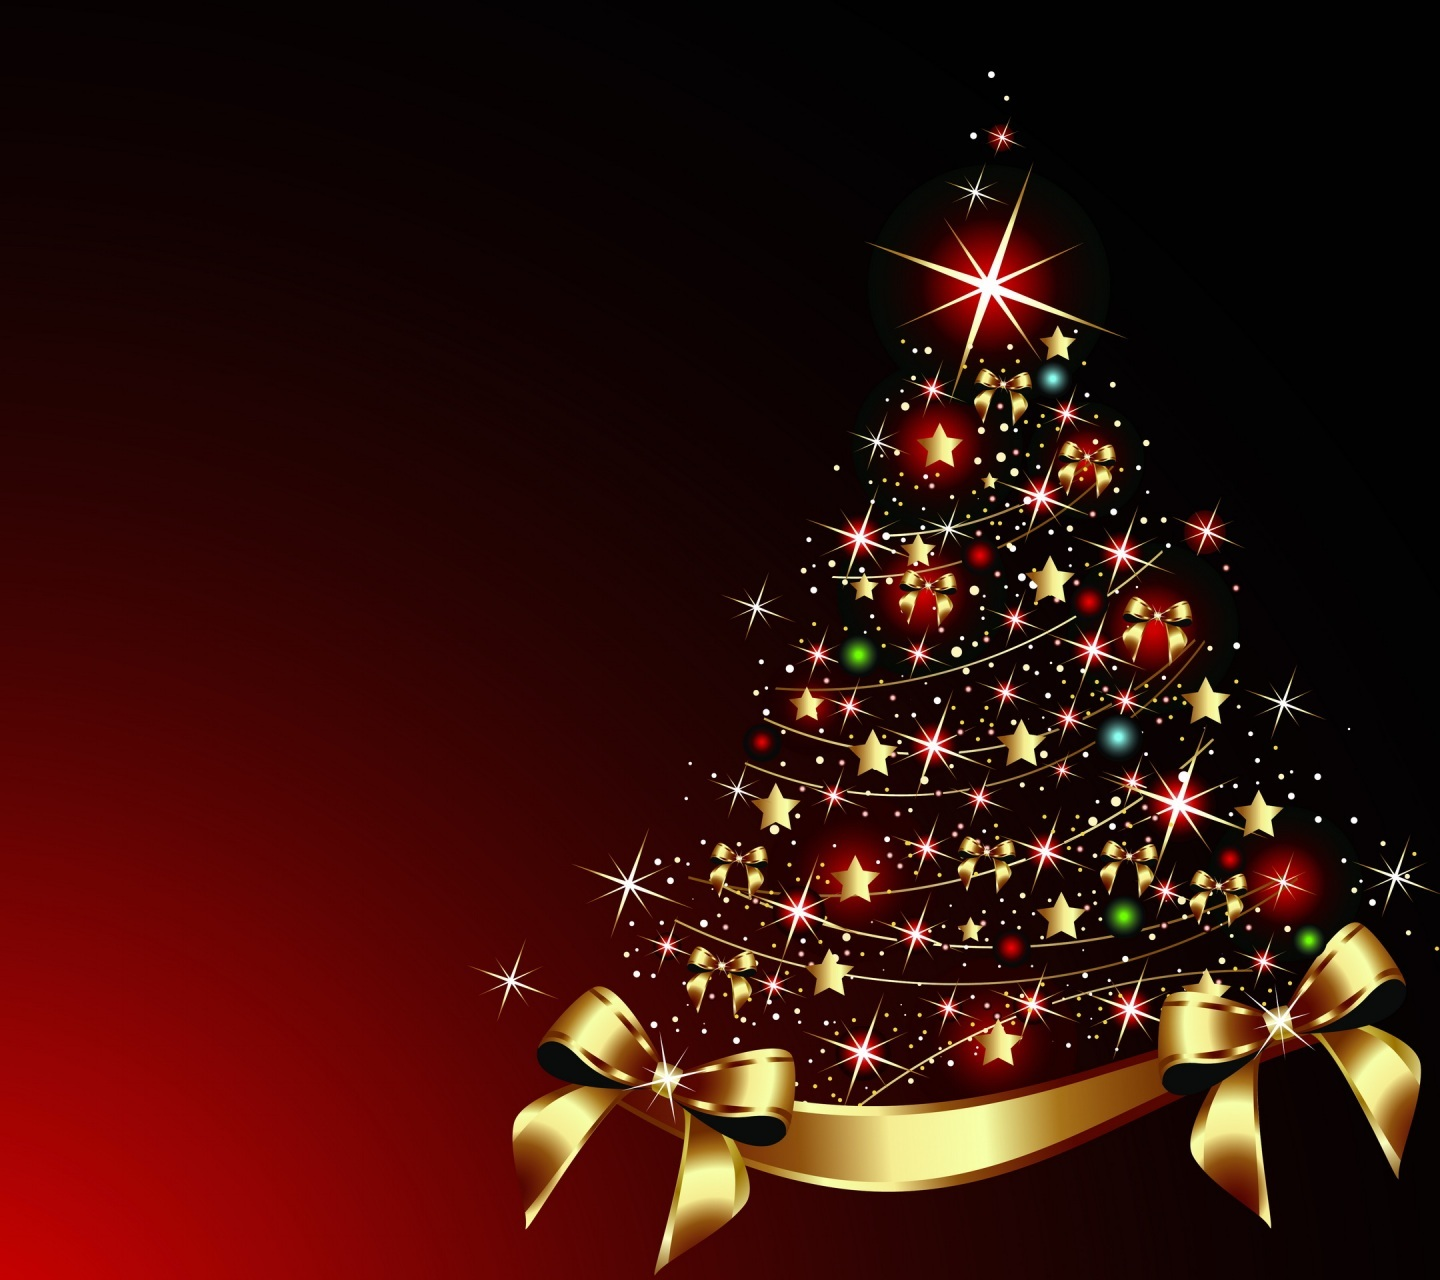 1440x1280 - Christmas Trees Backgrounds 23